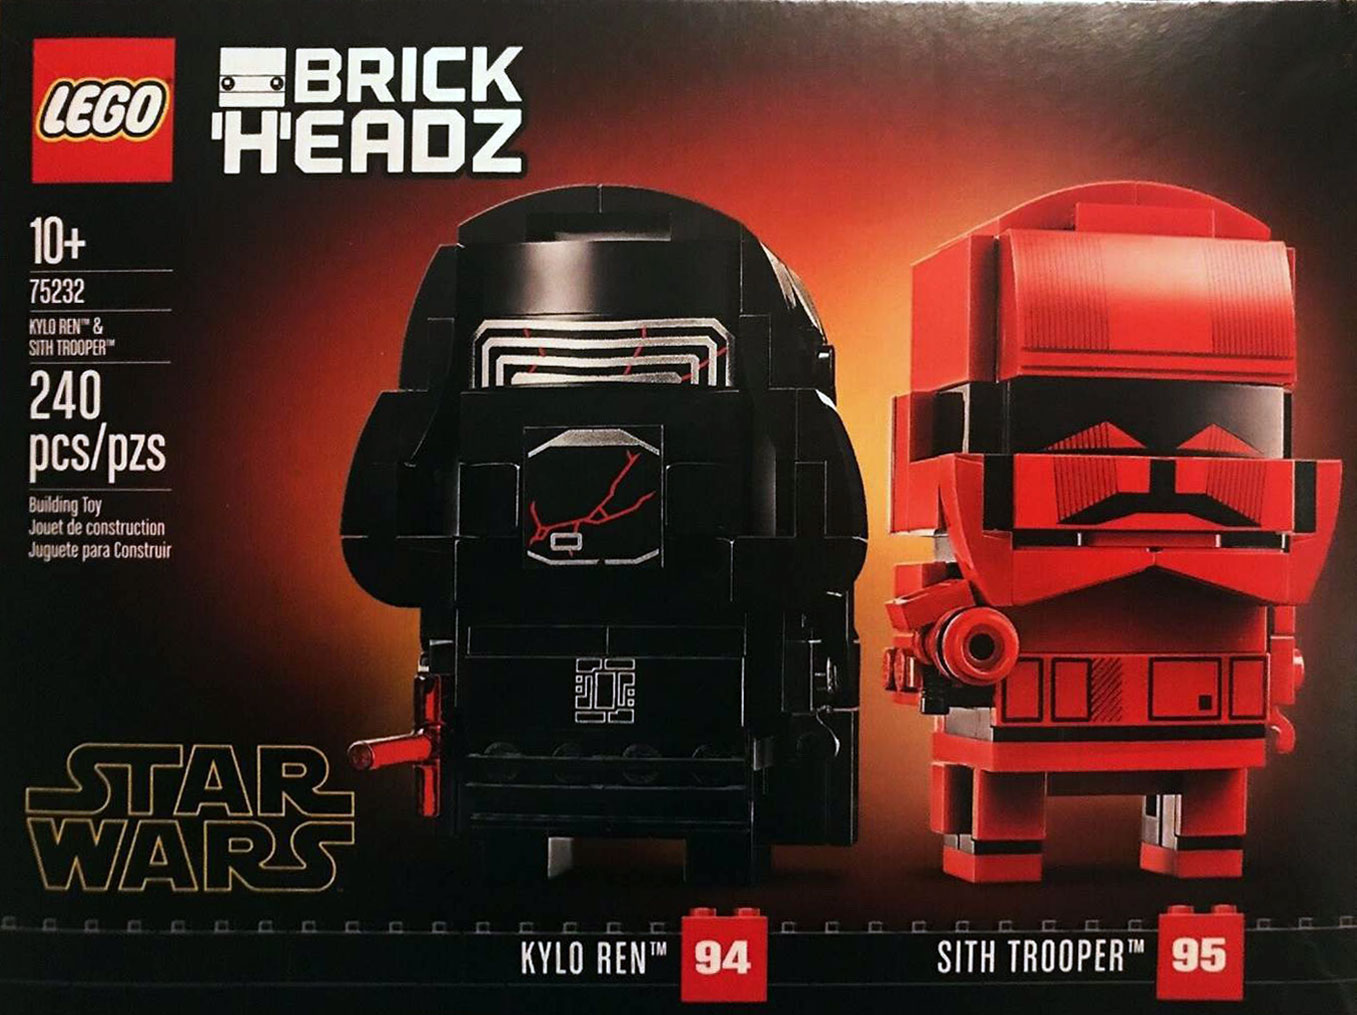 lego-star-wars-brickheadz-kylo-ren-sith-trooper